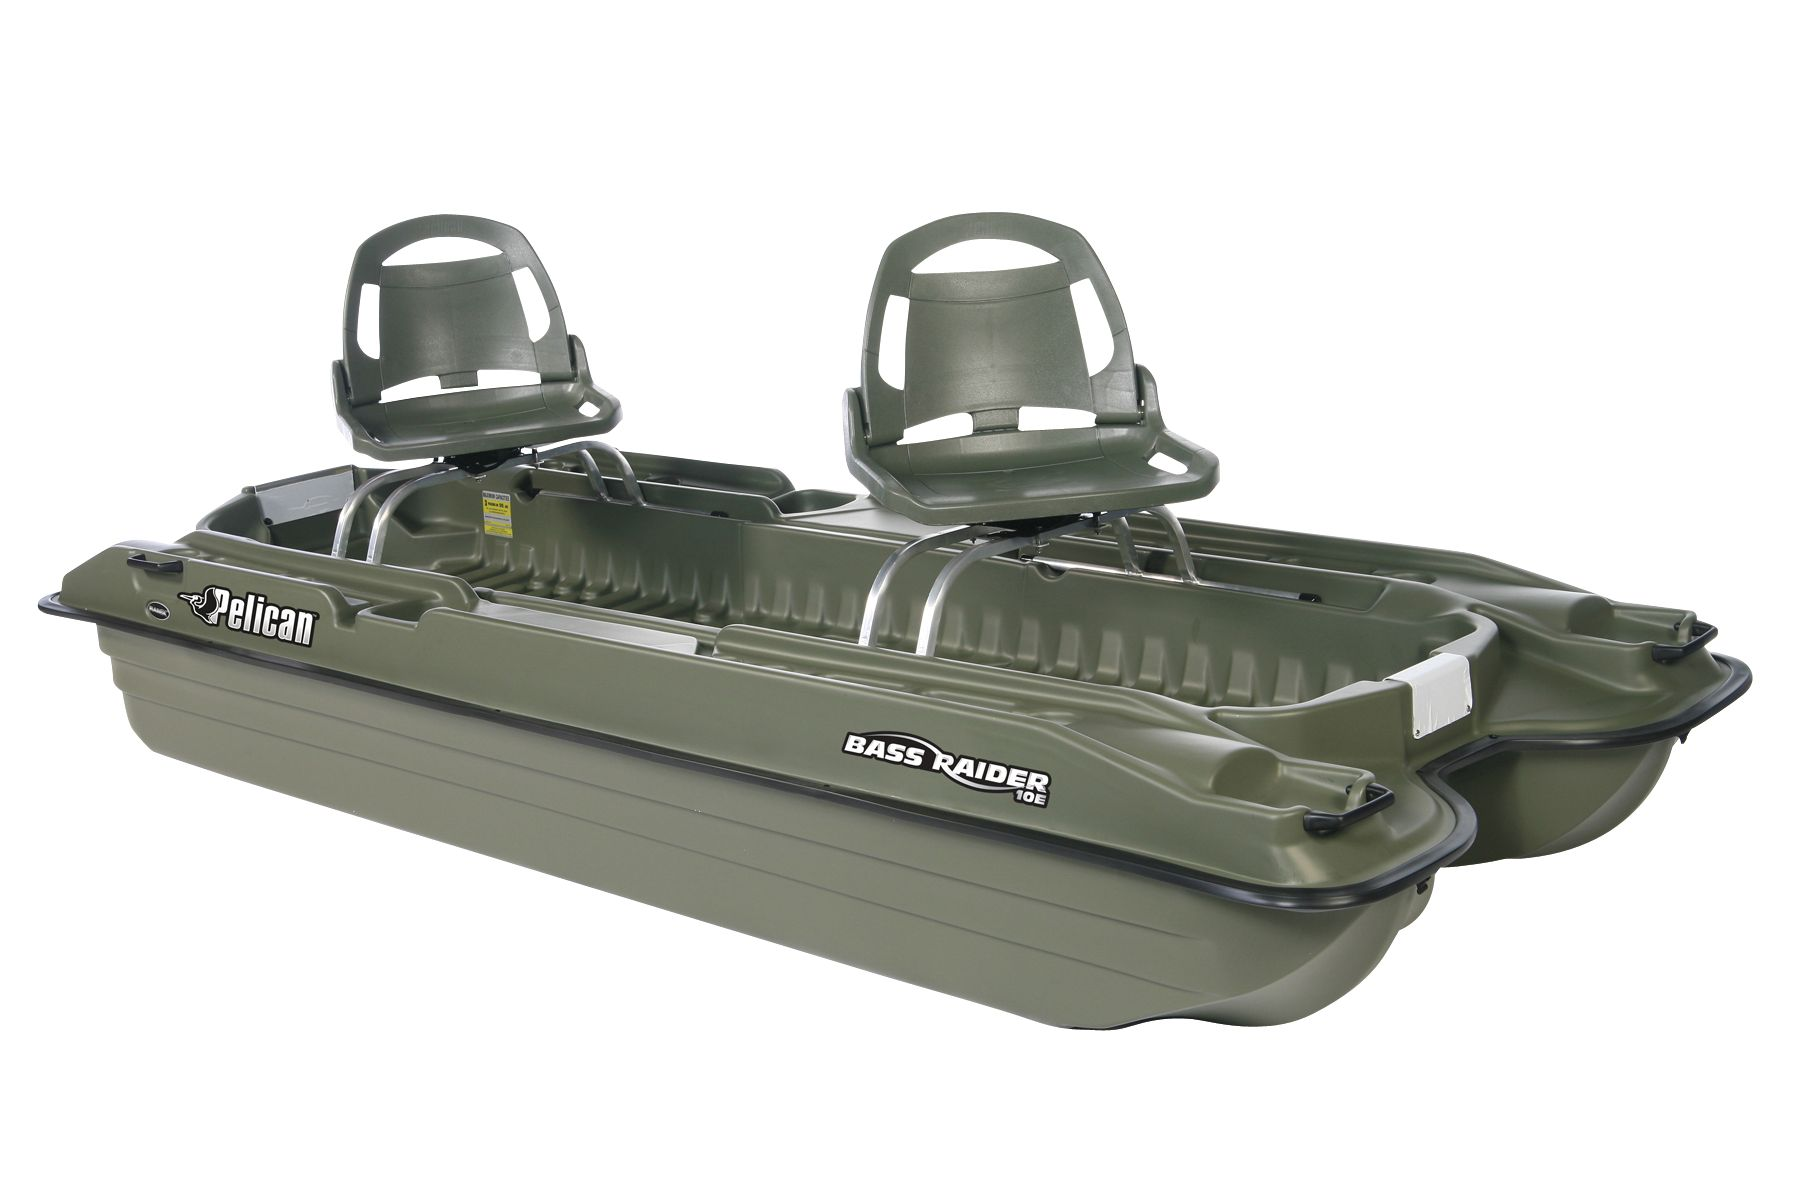 pelican bass raider 10e fishing boat field stream